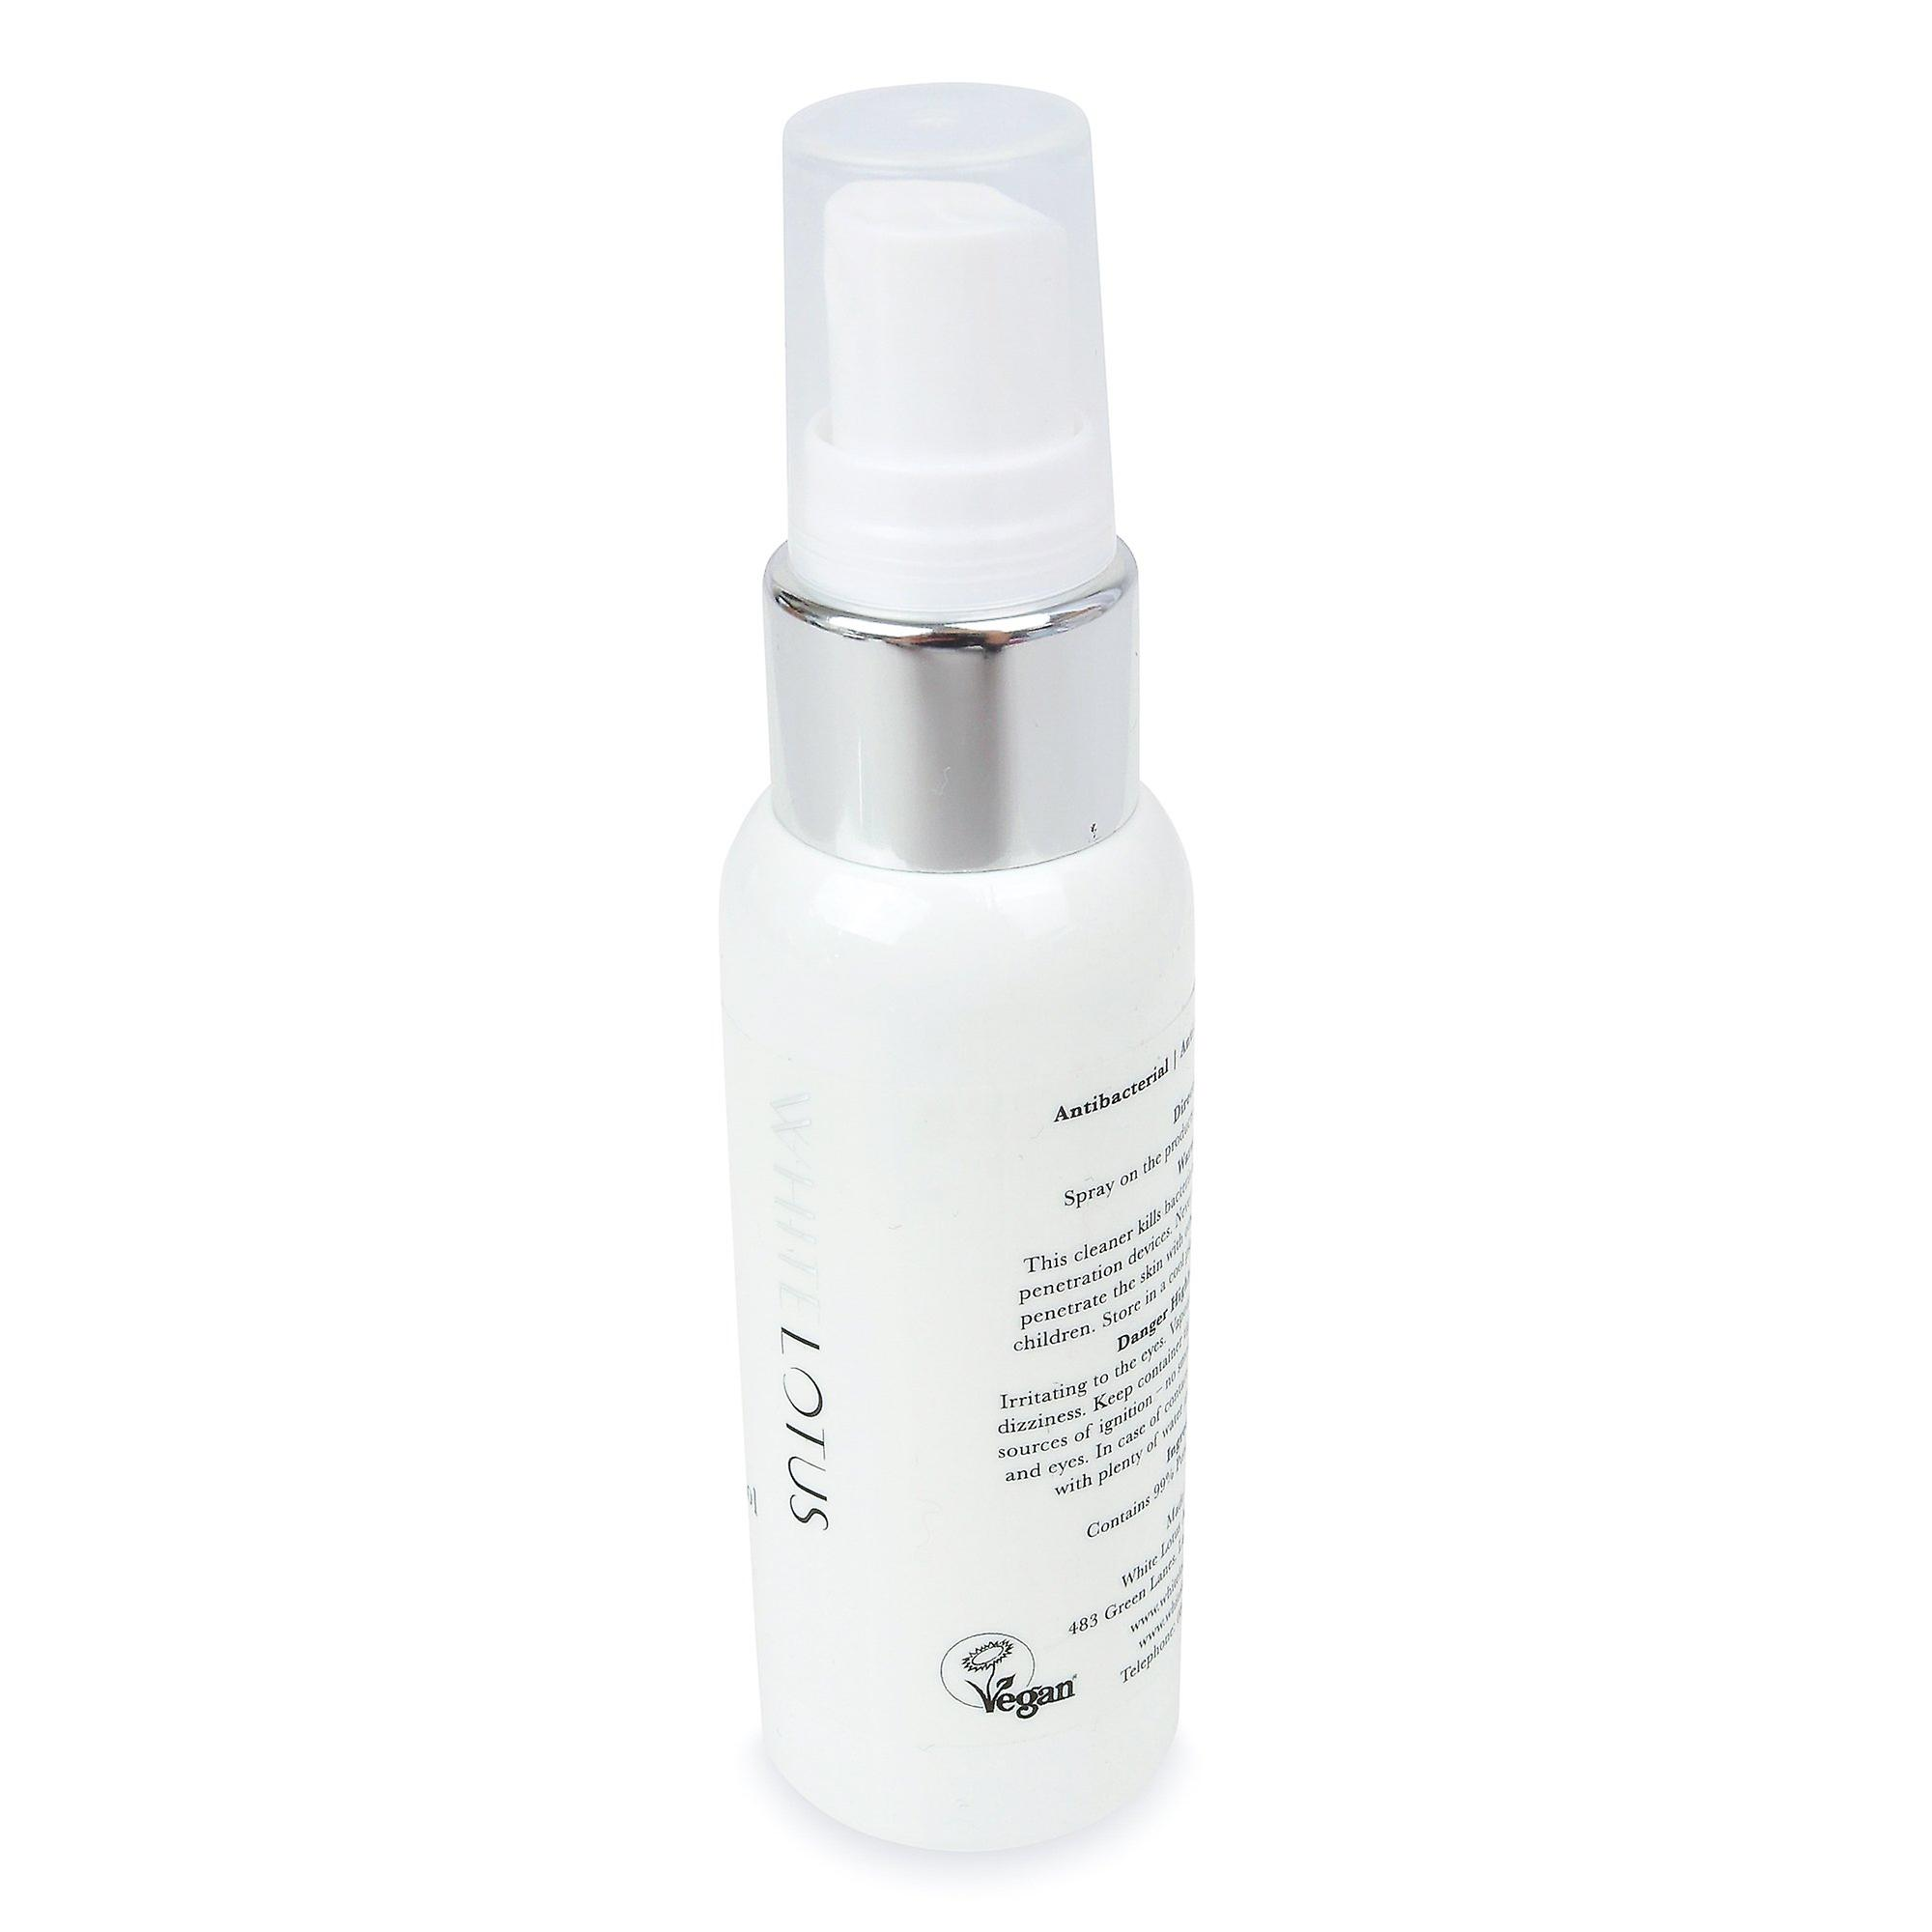 Beauty tool cleaner anti bacterial isopropyl alcohol spray 50ml